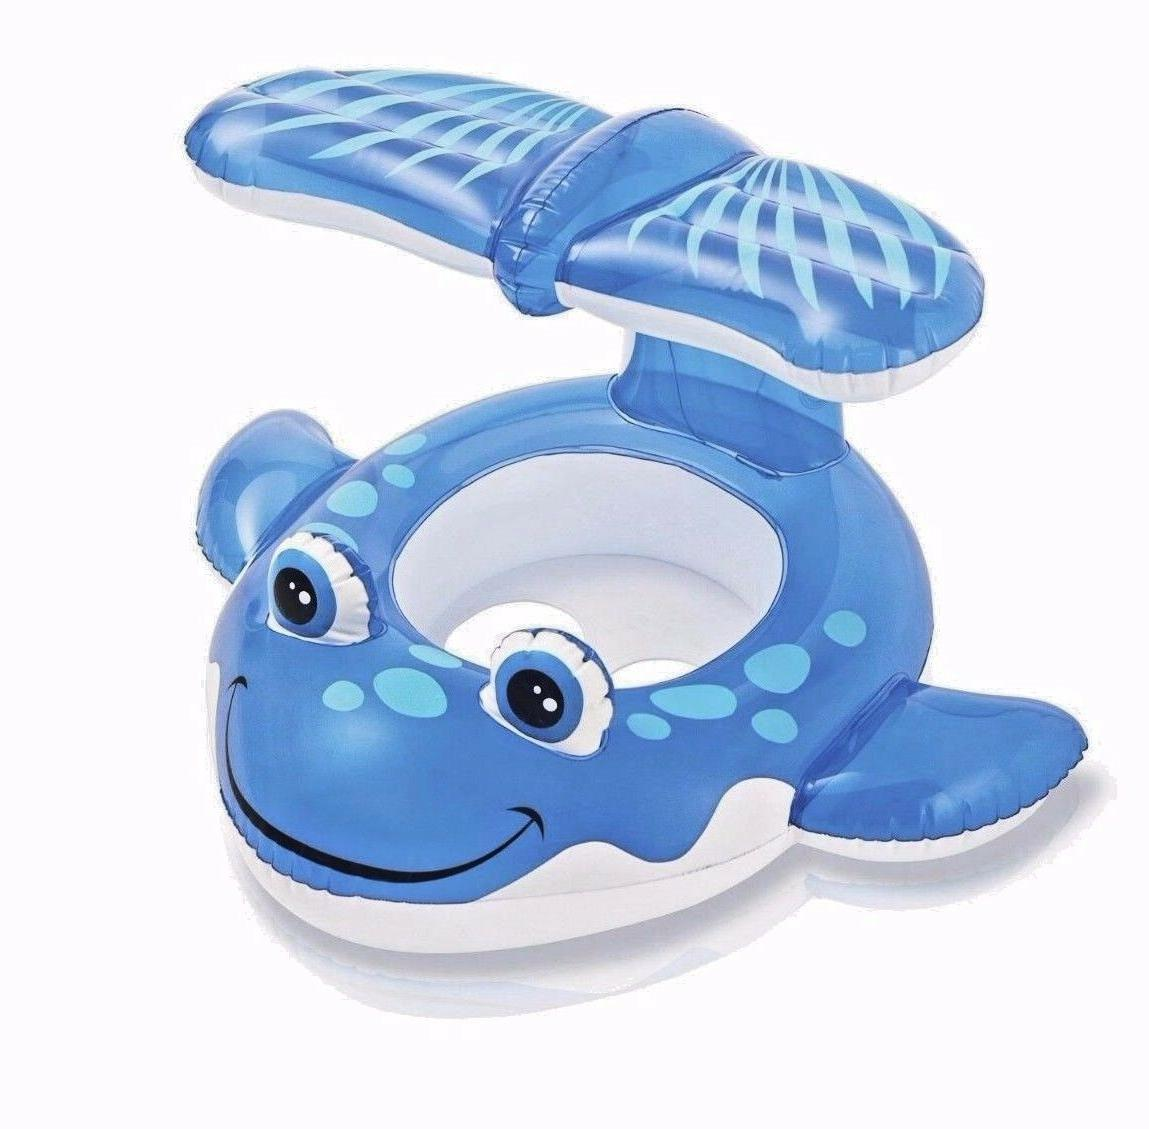 Intex Whale Inflatable Sit Pool Party WaterToy